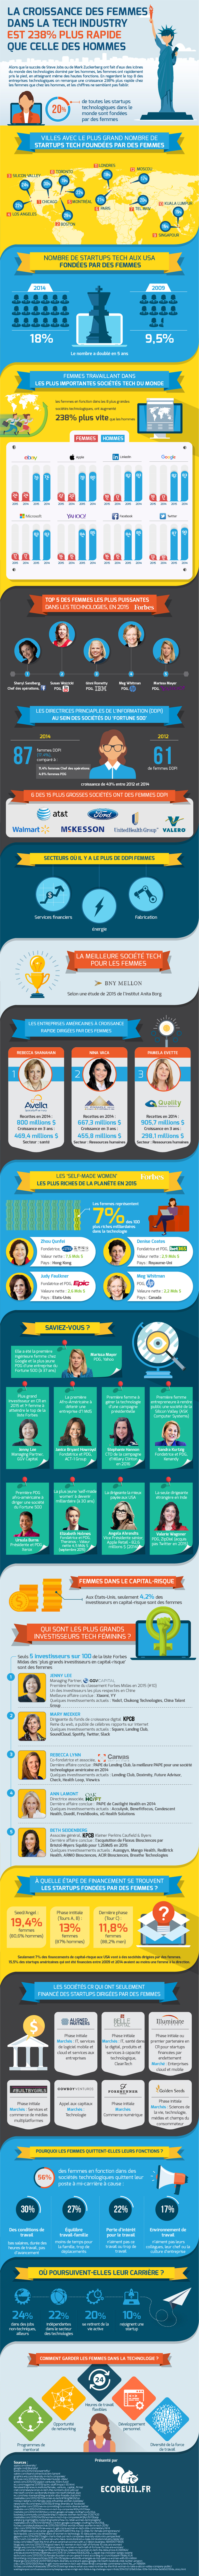 women-in-tech_infographic-fr-01-1